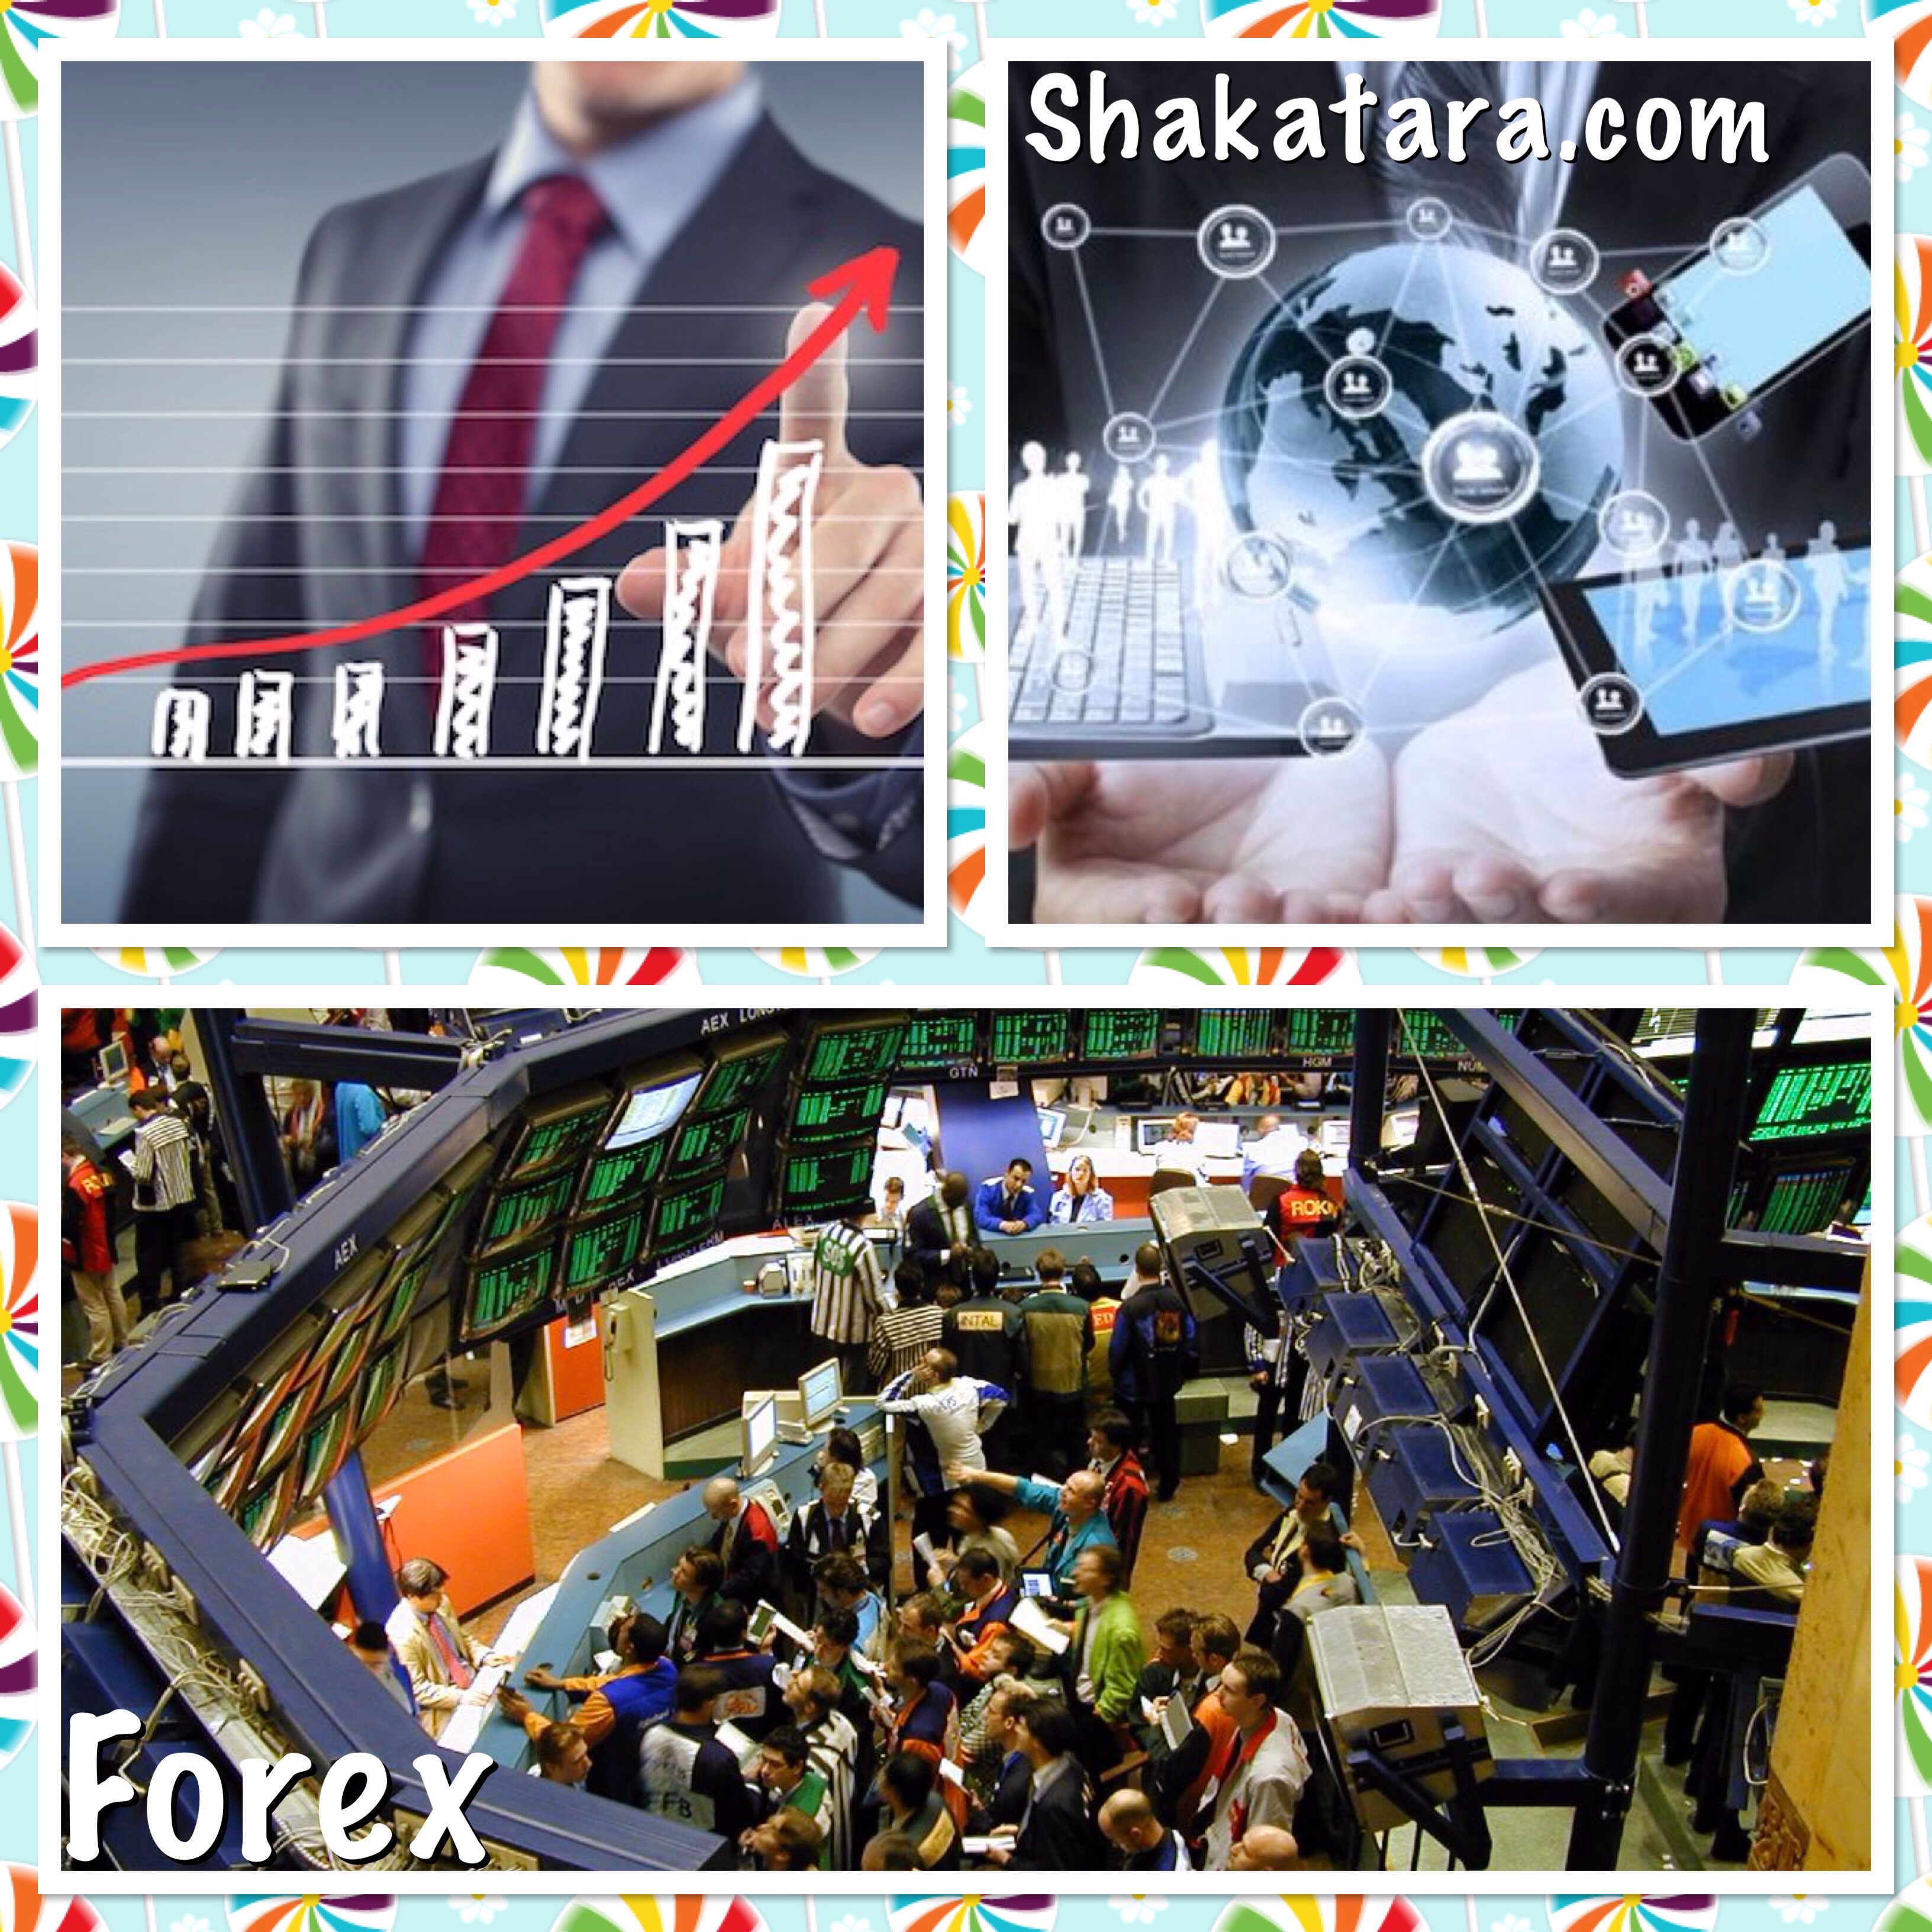 INTRODUCTION TO THE WORLD OF FOREX